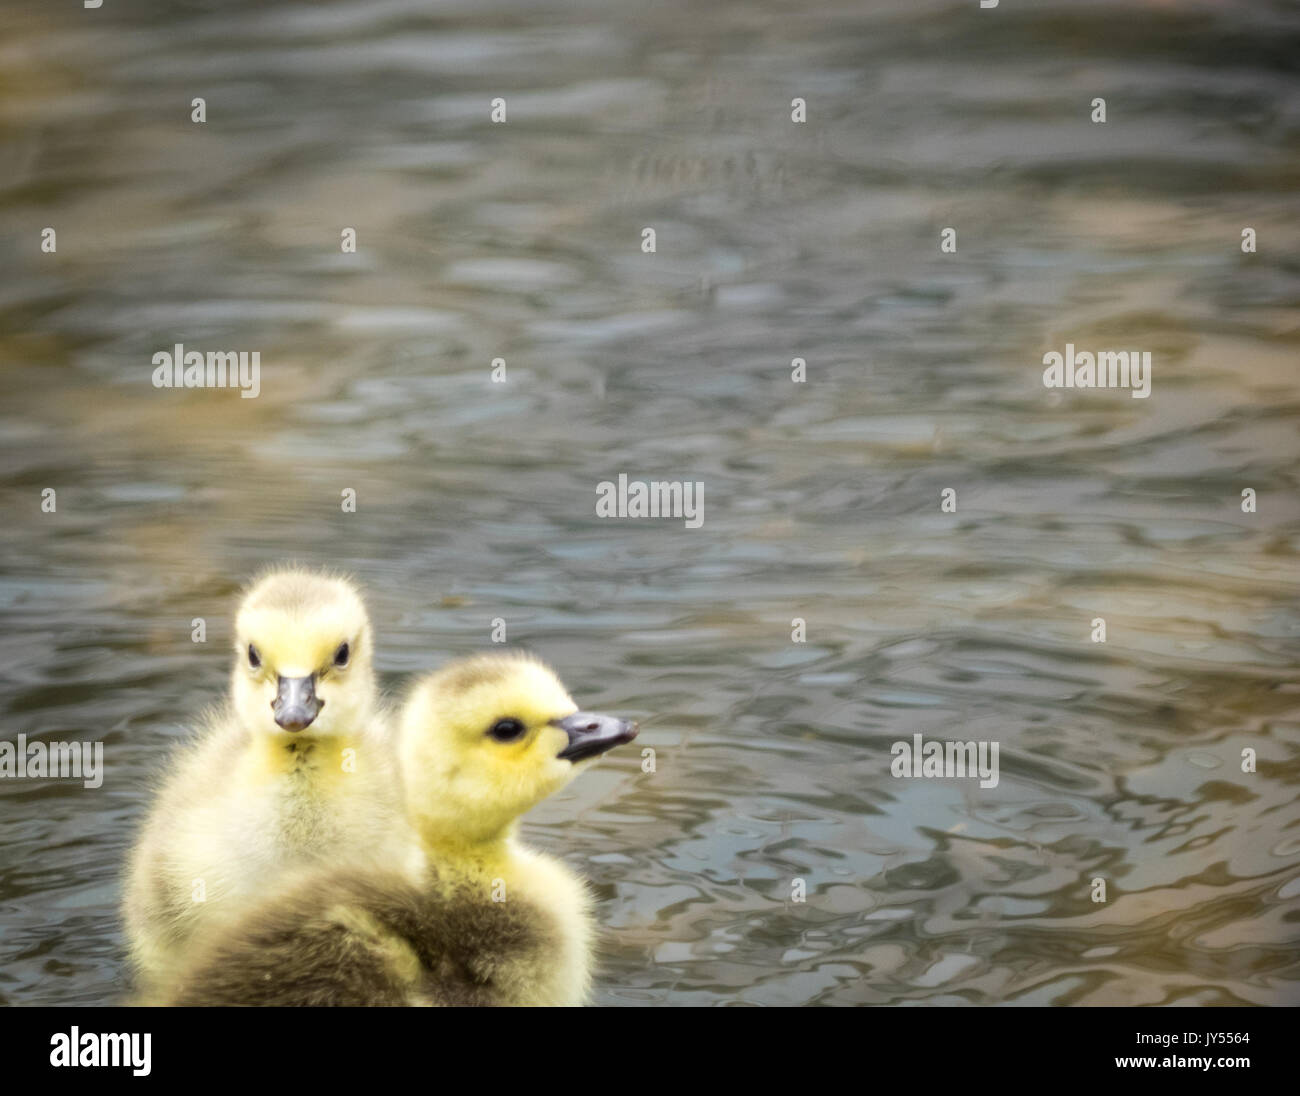 A couple of cute, fuzzy day-old Canada geese goslngs (Branta canadensis) wading in a shallow pond at Century Park - Stock Image